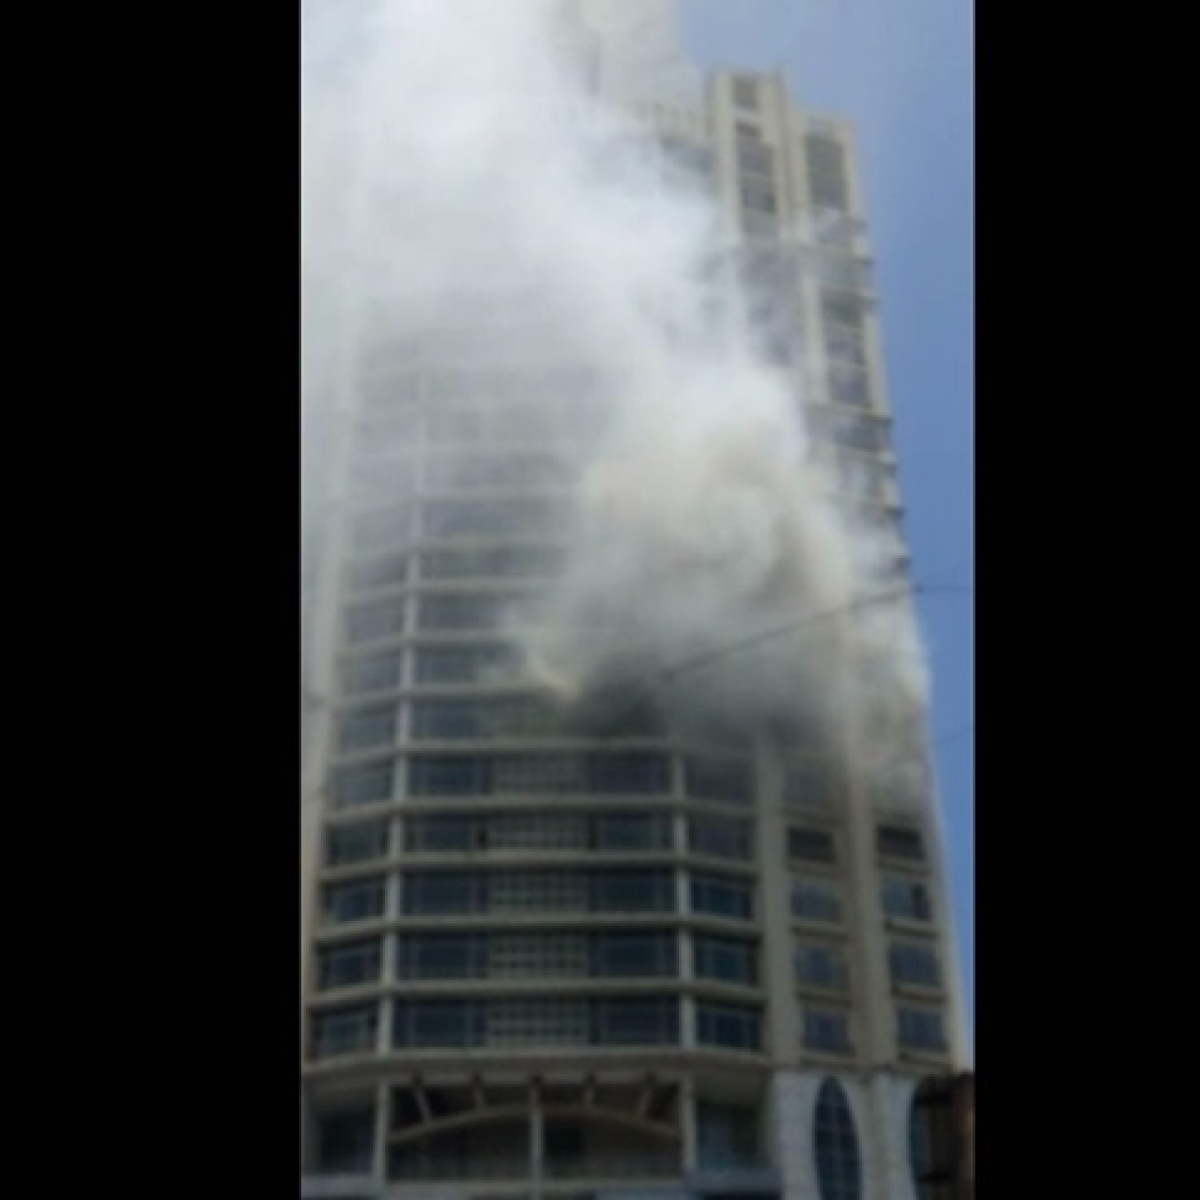 Minor fire breaks out at a kitchen of  high rise building in South Mumbai